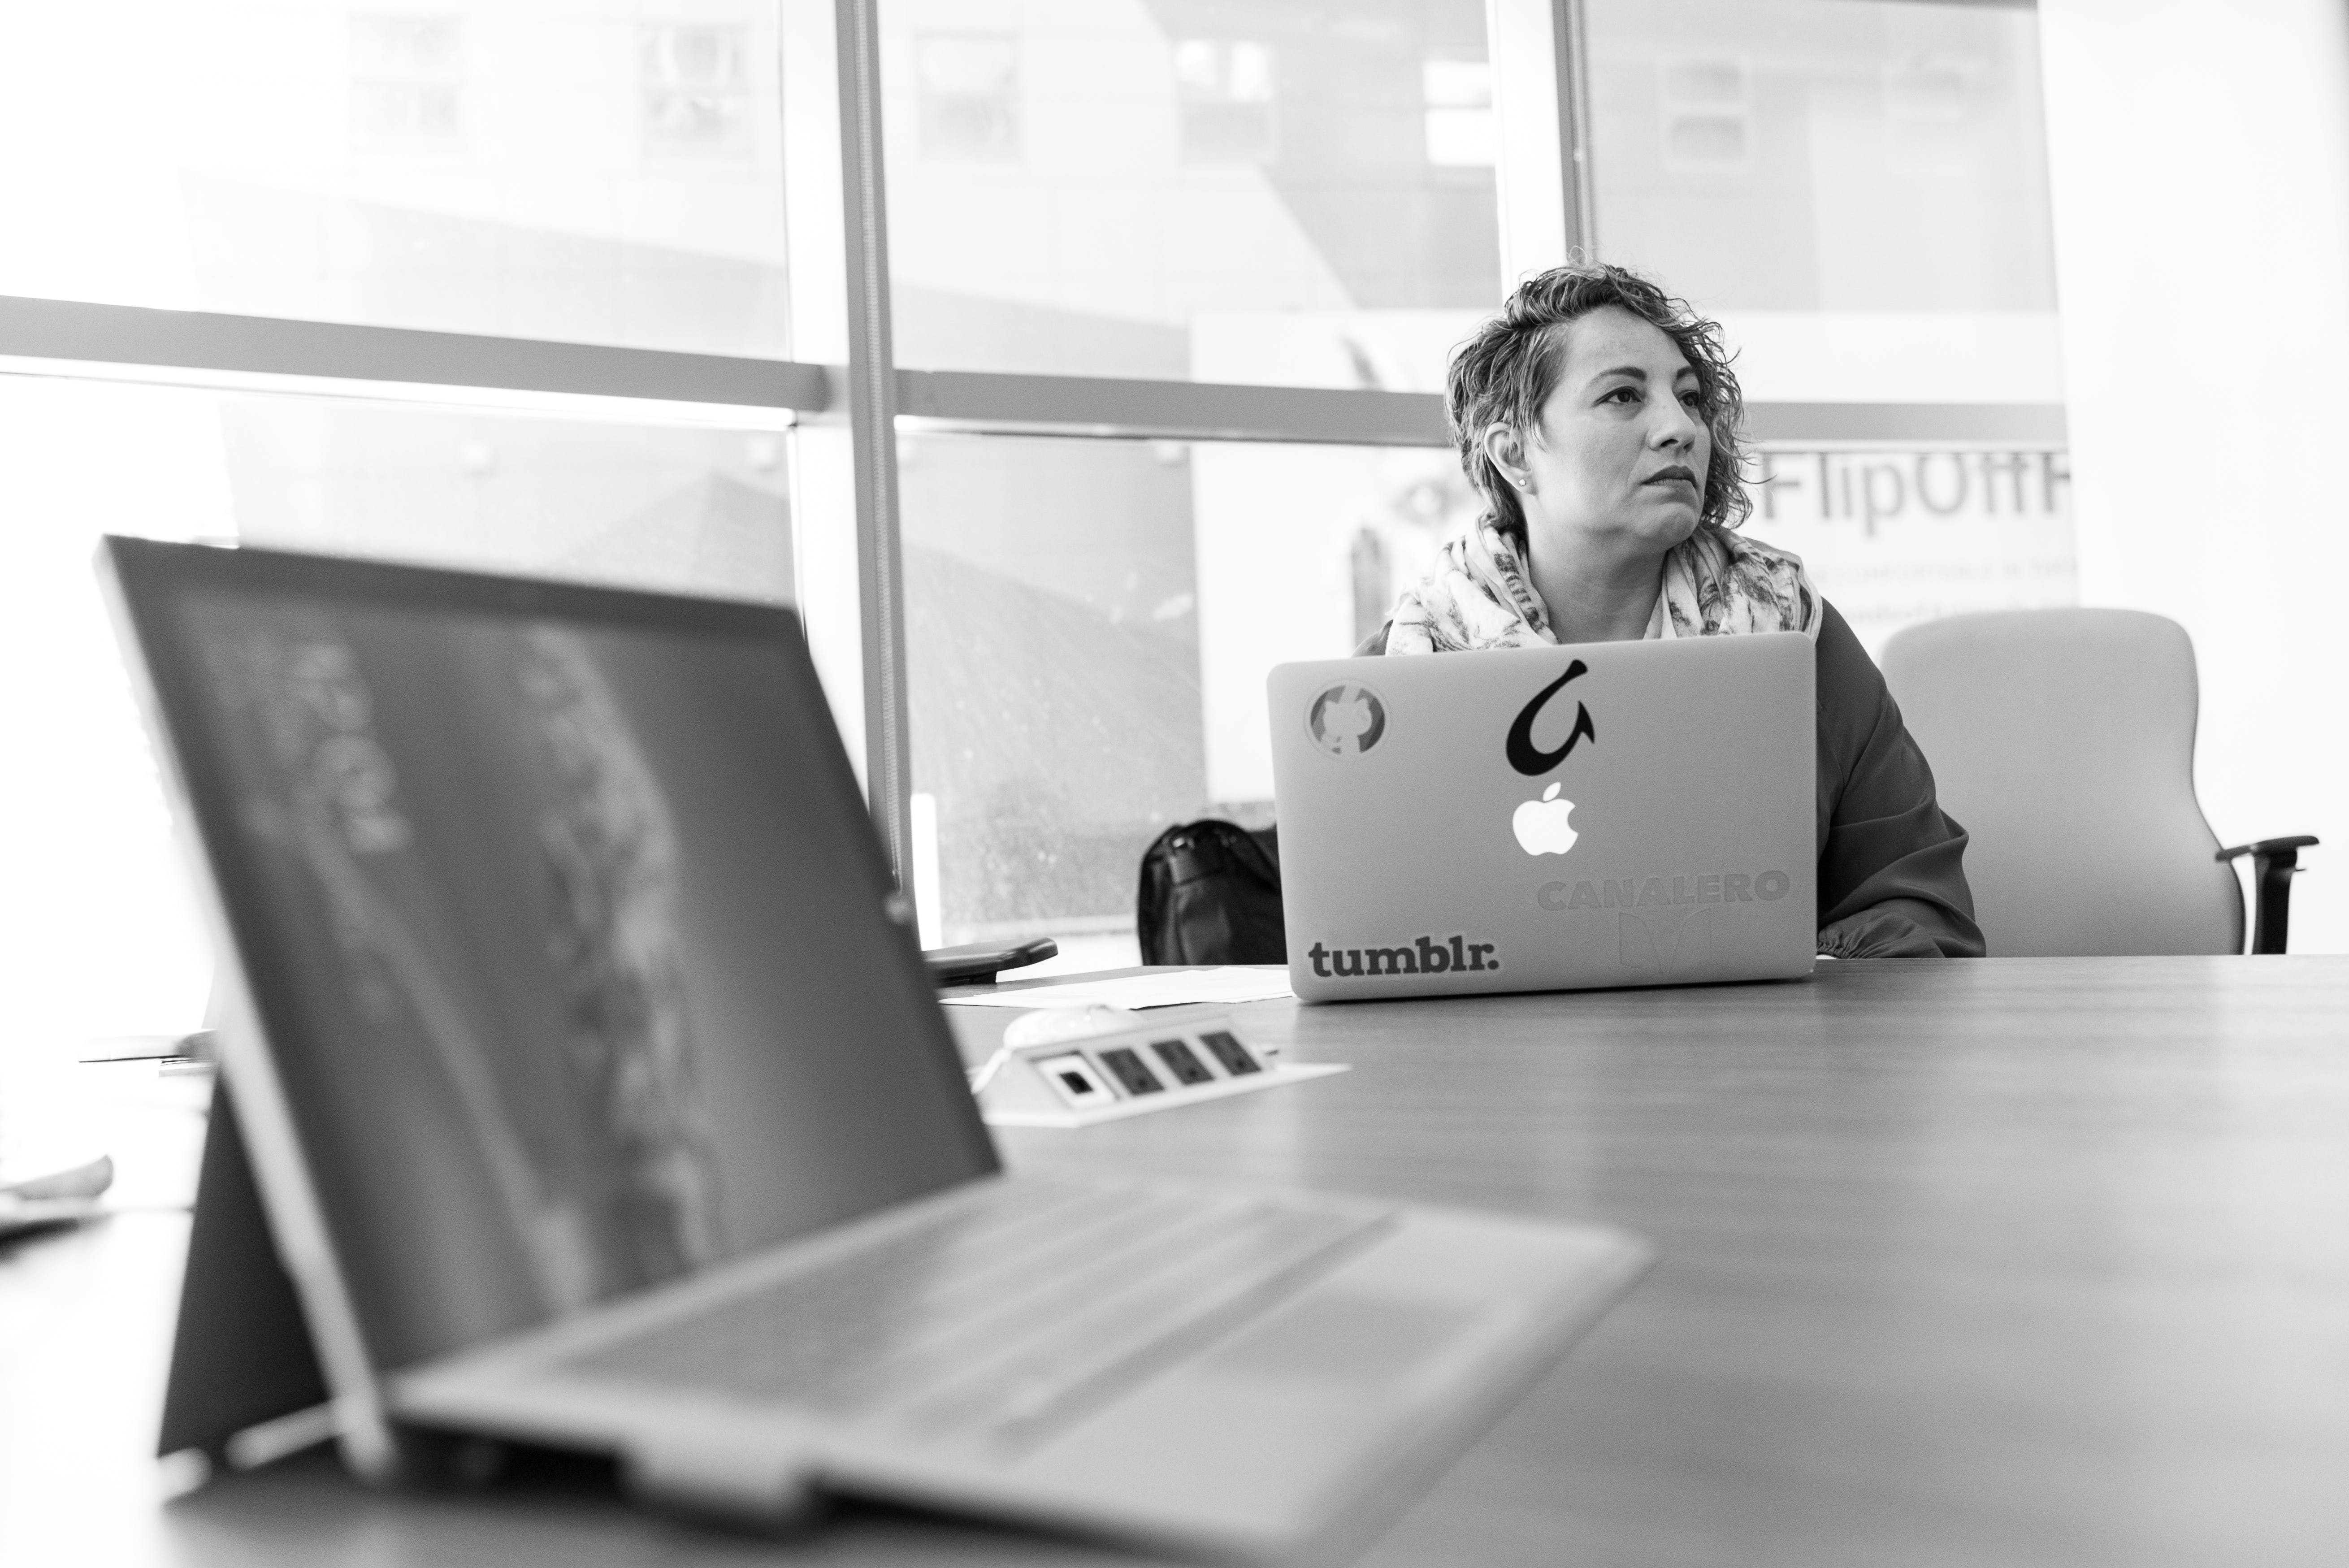 Grayscale Photography of Laptop Computer Near Woman Sitting on Chair